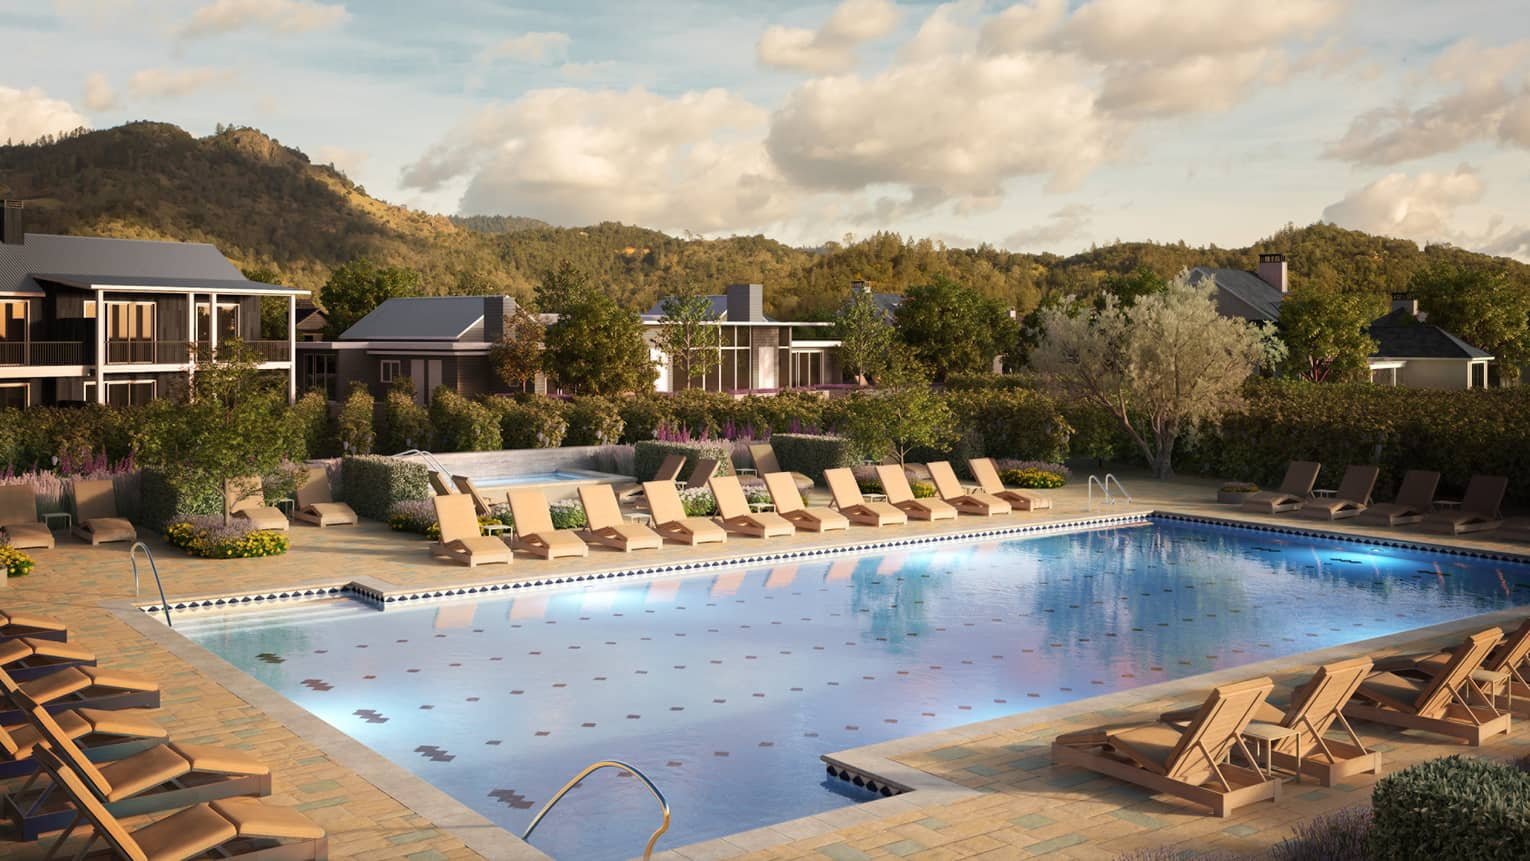 Rendering of patio lounge chairs around outdoor swimming pool with residences, mountains